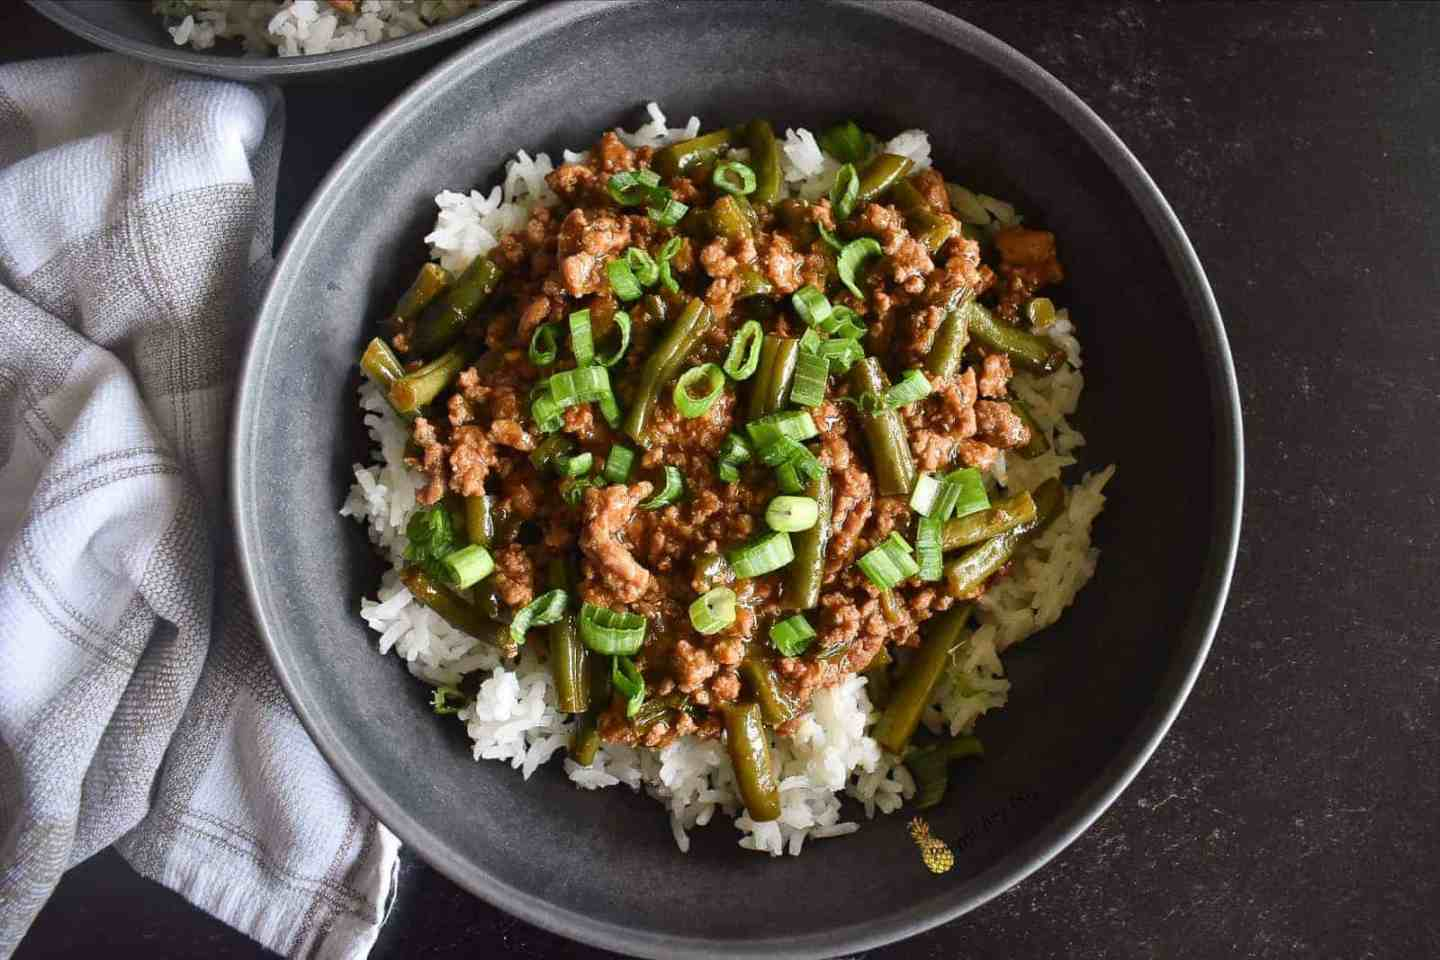 Sweet-and-Spicy-Turkey-and-Green-Bean-Stir-Fry